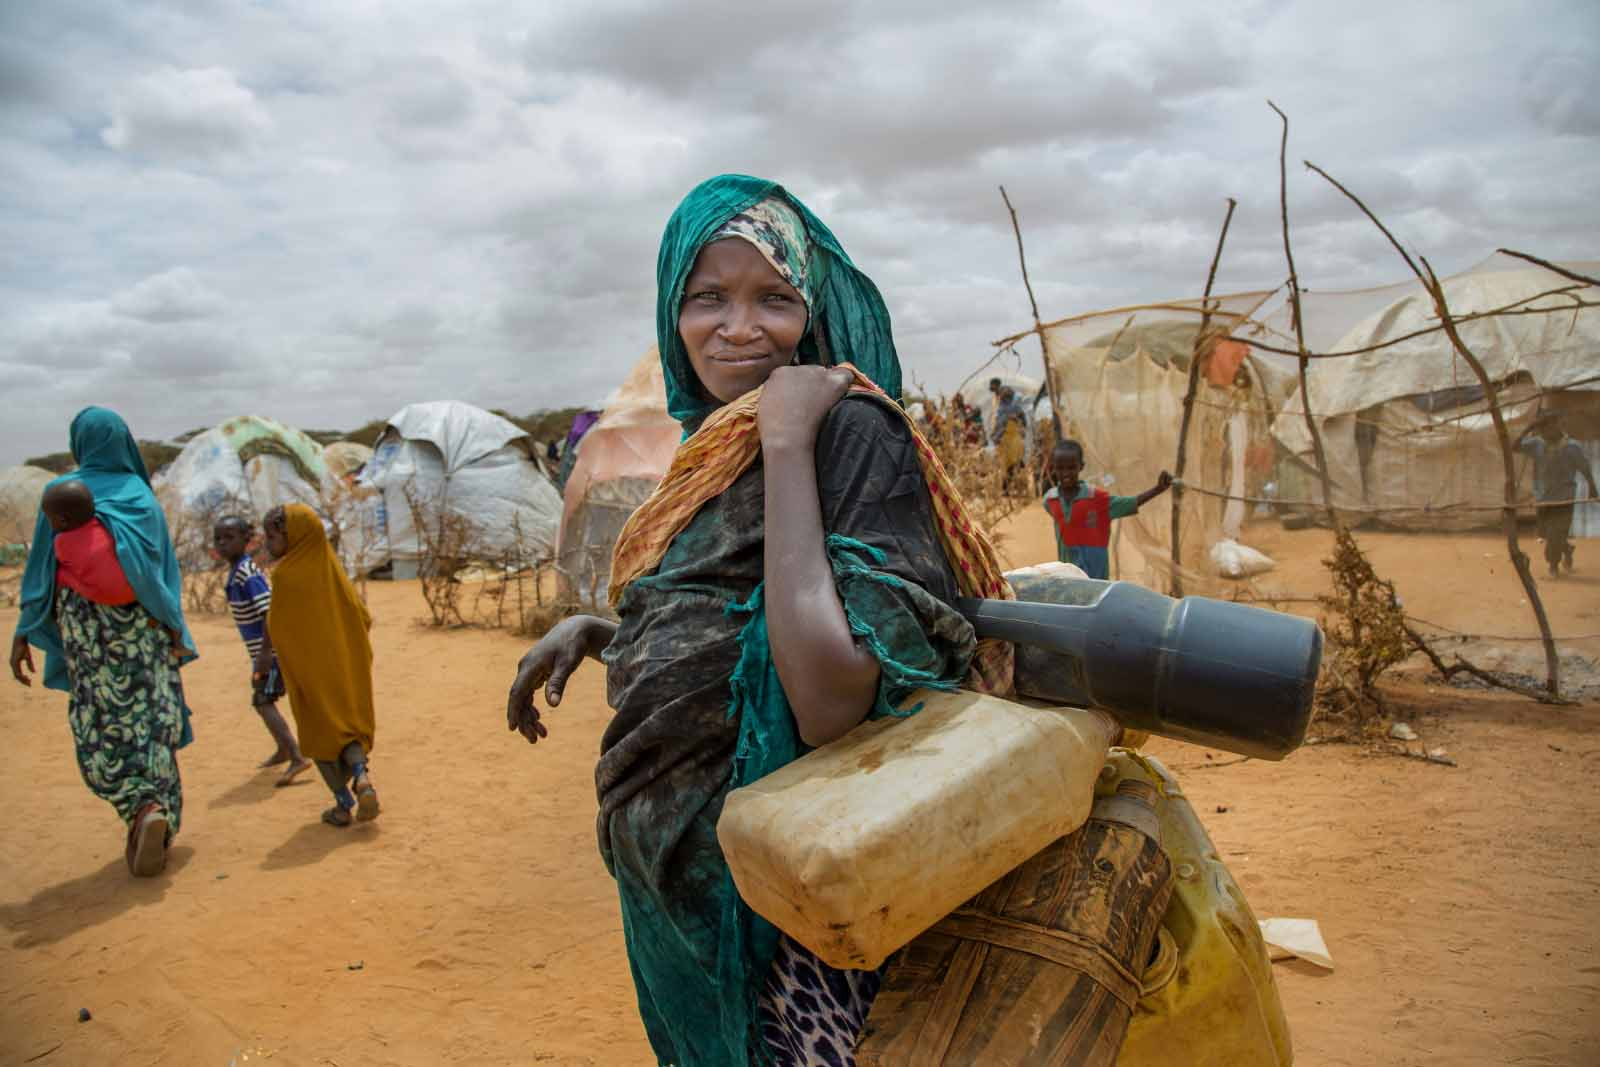 A photo on the Everyday Climate Change Instagram feed shows a Somali woman walking to collect water in Kapasa IDP Camp in Jubaland in June 2017. Photo by Georgina Goodwin